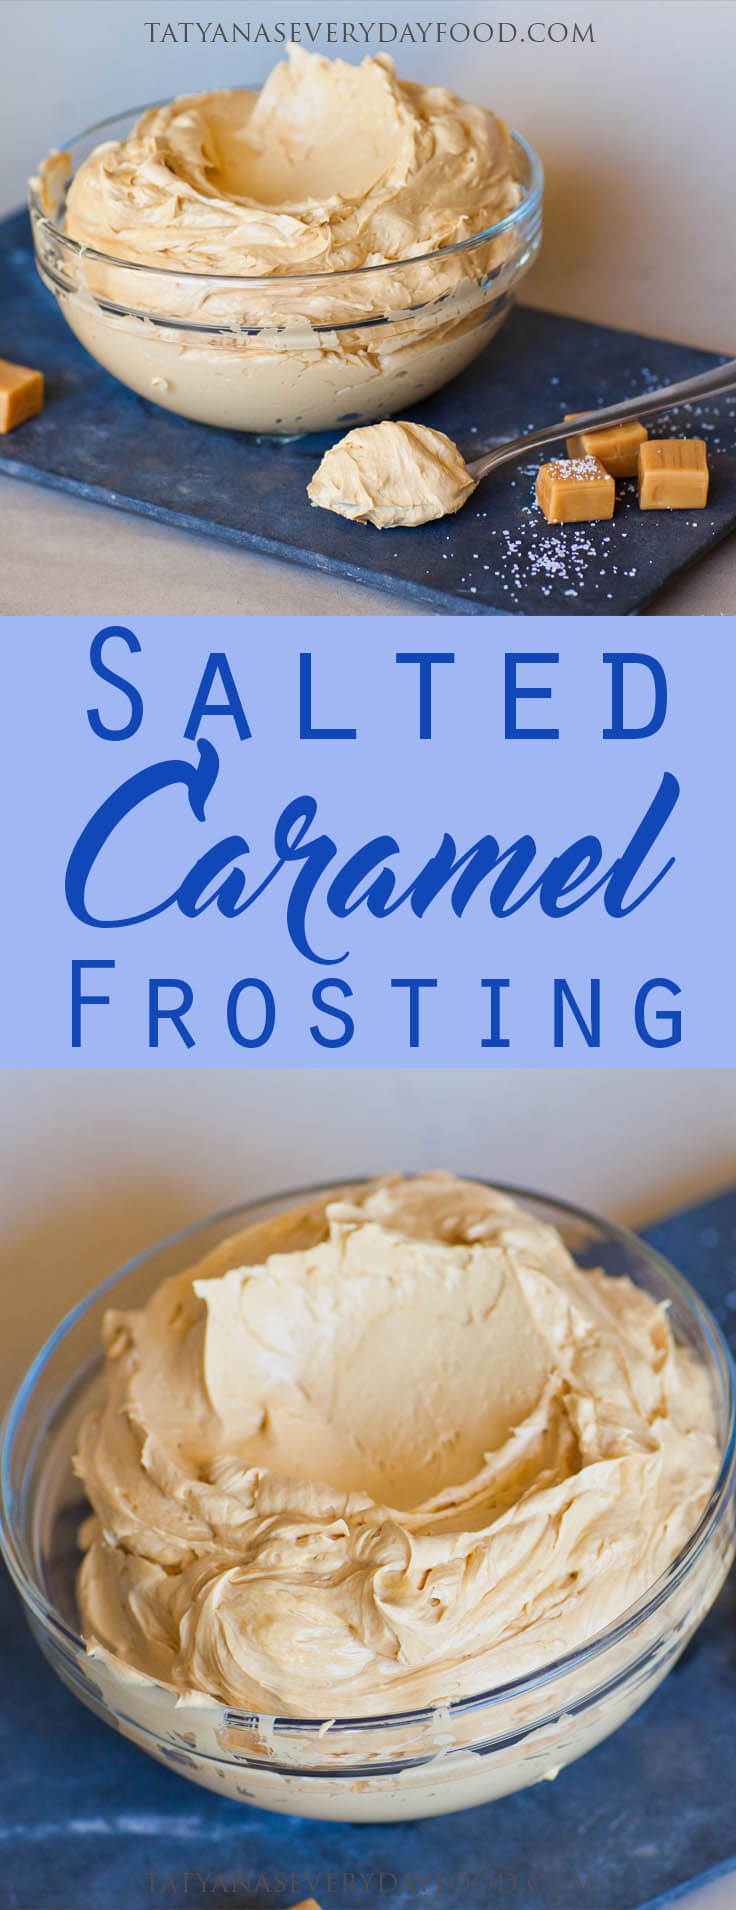 Salted Caramel Frosting - Tatyanas Everyday Food